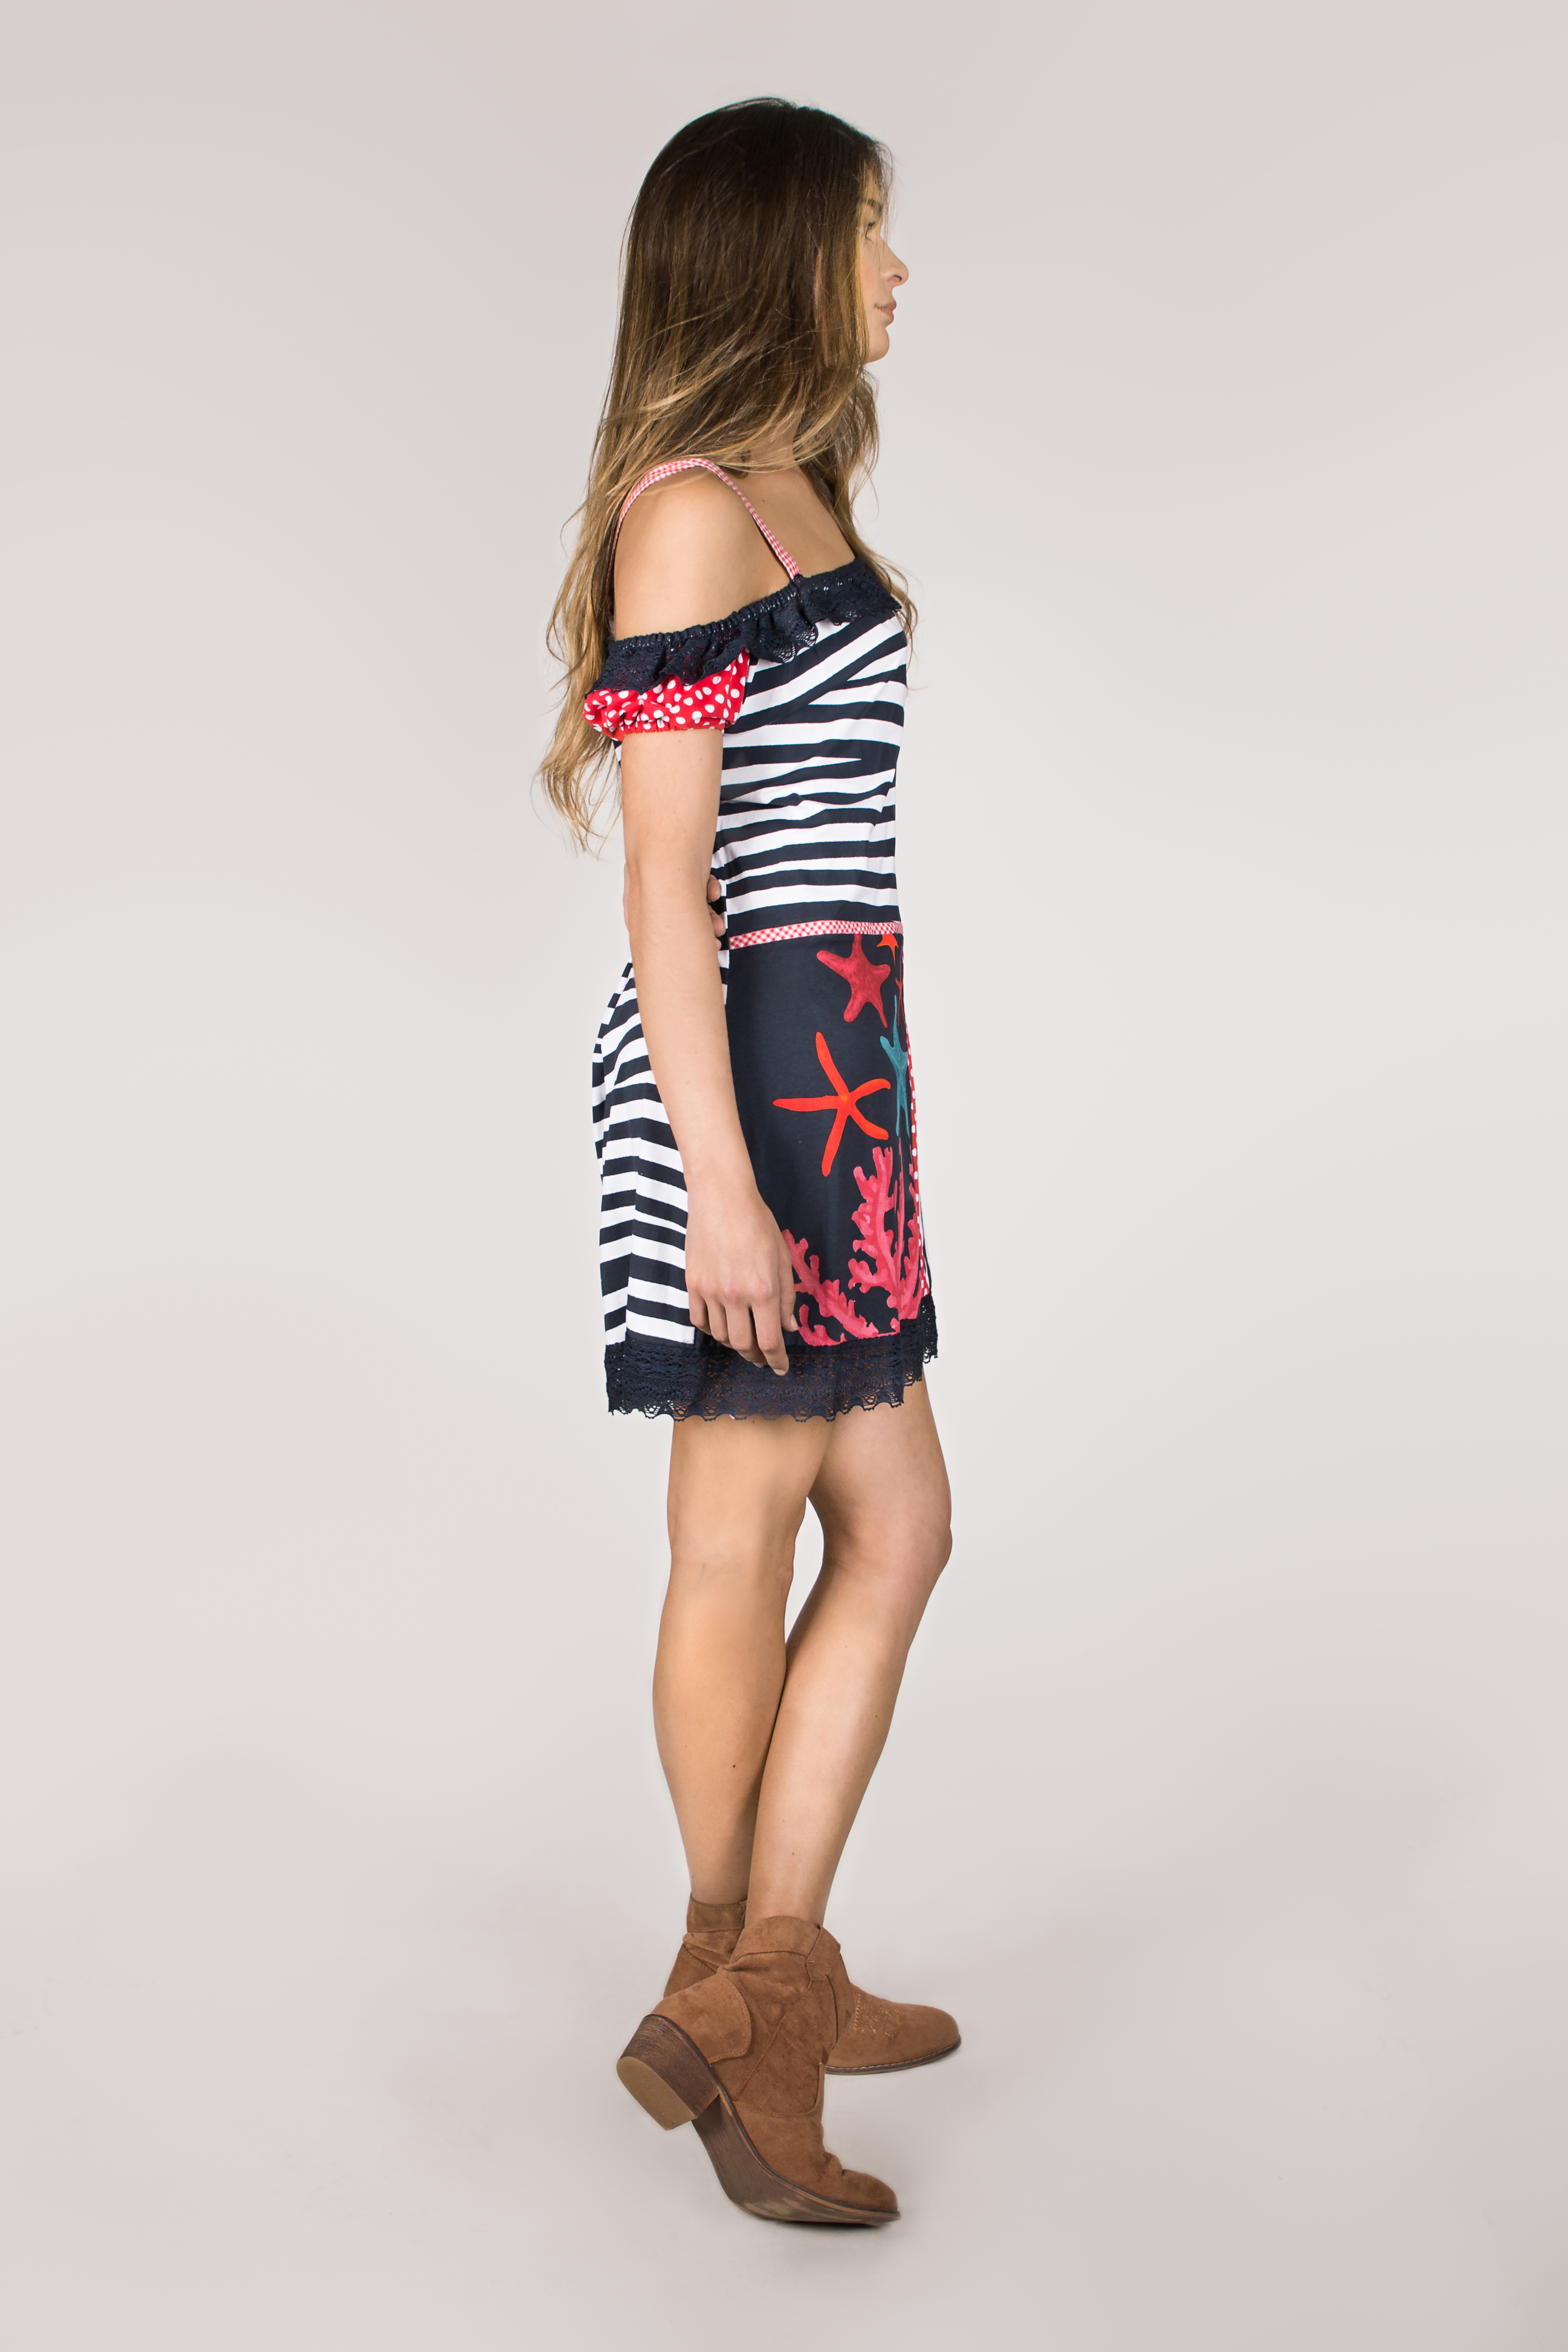 Shoklett Spain: Pink Coral Cotton Ruffled Short Dress Zoey SOLD OUT